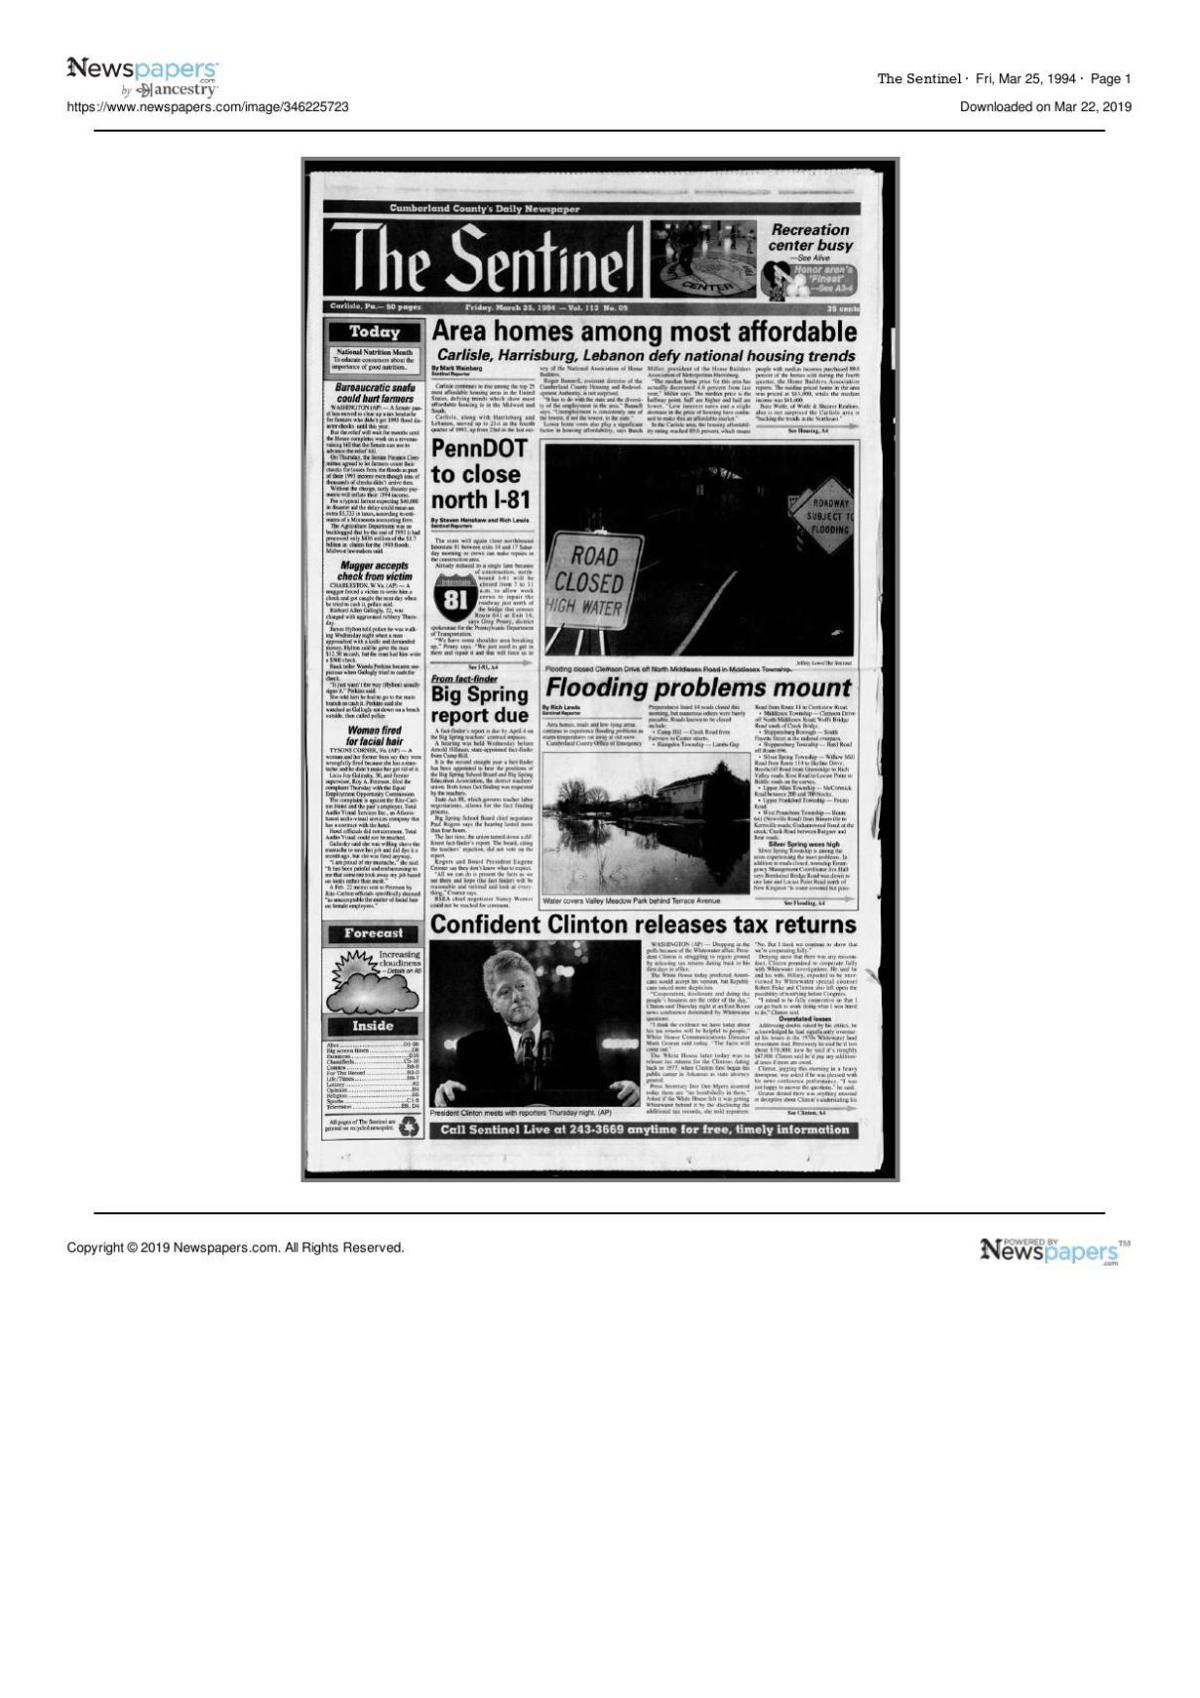 The Sentinel from March 25, 1994 page one